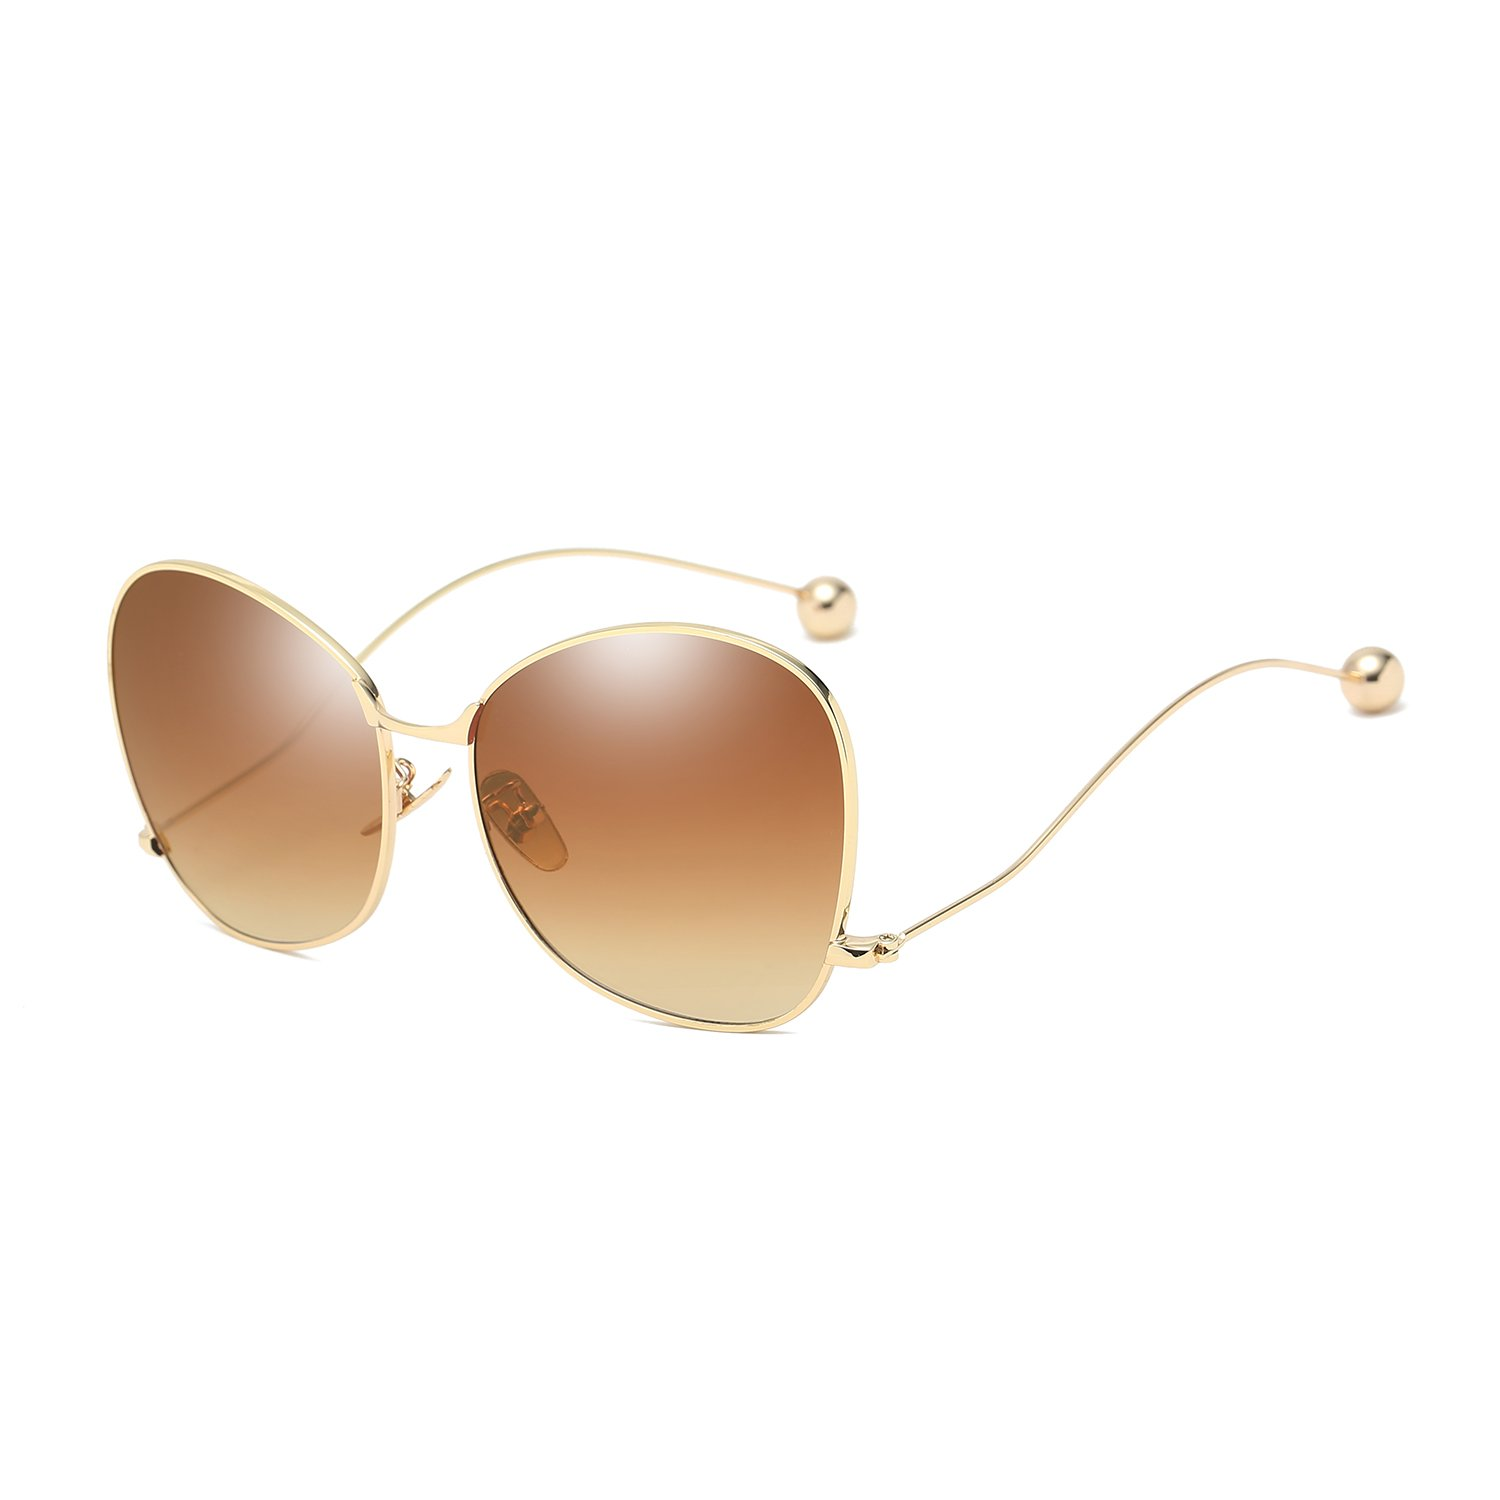 BVAGSS Modern Fashion Women's Sunglasses Mirrored Glasses WS019 (Gold Frame, Brown Lens)